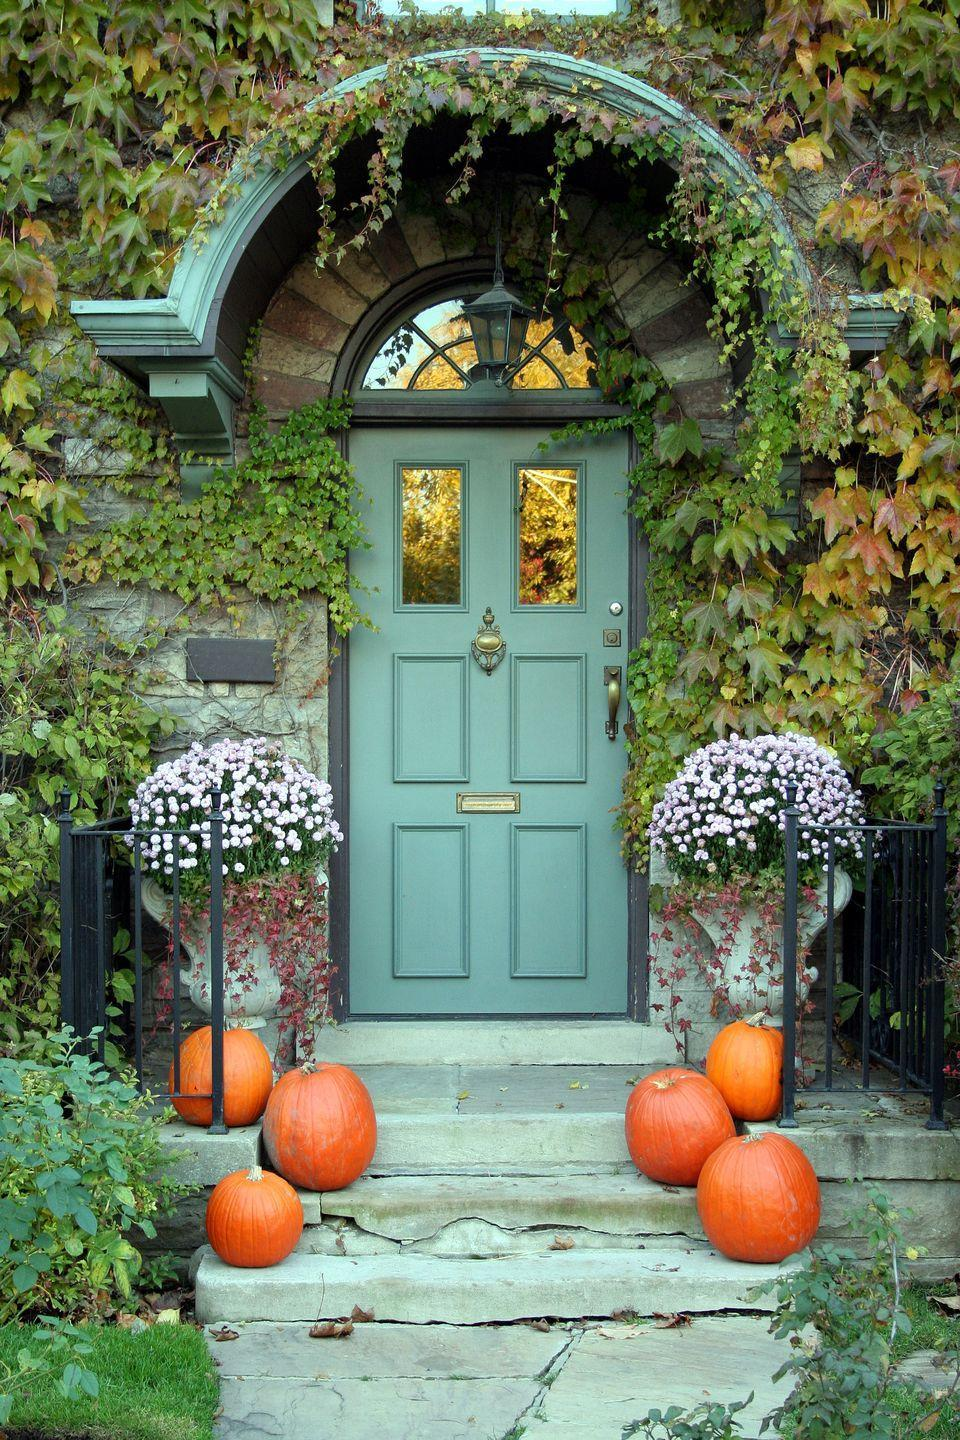 """<p>If your home's exterior already boasts a standout hue and lush greenery, keep your Halloween decor simple. No-frills pumpkins on either side of your steps will do the trick.</p><p><a class=""""link rapid-noclick-resp"""" href=""""https://go.redirectingat.com?id=74968X1596630&url=https%3A%2F%2Fwww.wayfair.com%2Fdecor-pillows%2Fpdp%2Faugust-grove-long-stem-pumpkin-agtg3415.html&sref=https%3A%2F%2Fwww.goodhousekeeping.com%2Fholidays%2Fhalloween-ideas%2Fg32948621%2Fhalloween-door-decorations%2F"""" rel=""""nofollow noopener"""" target=""""_blank"""" data-ylk=""""slk:SHOP LONG-STEM PUMPKINS"""">SHOP LONG-STEM PUMPKINS</a></p>"""